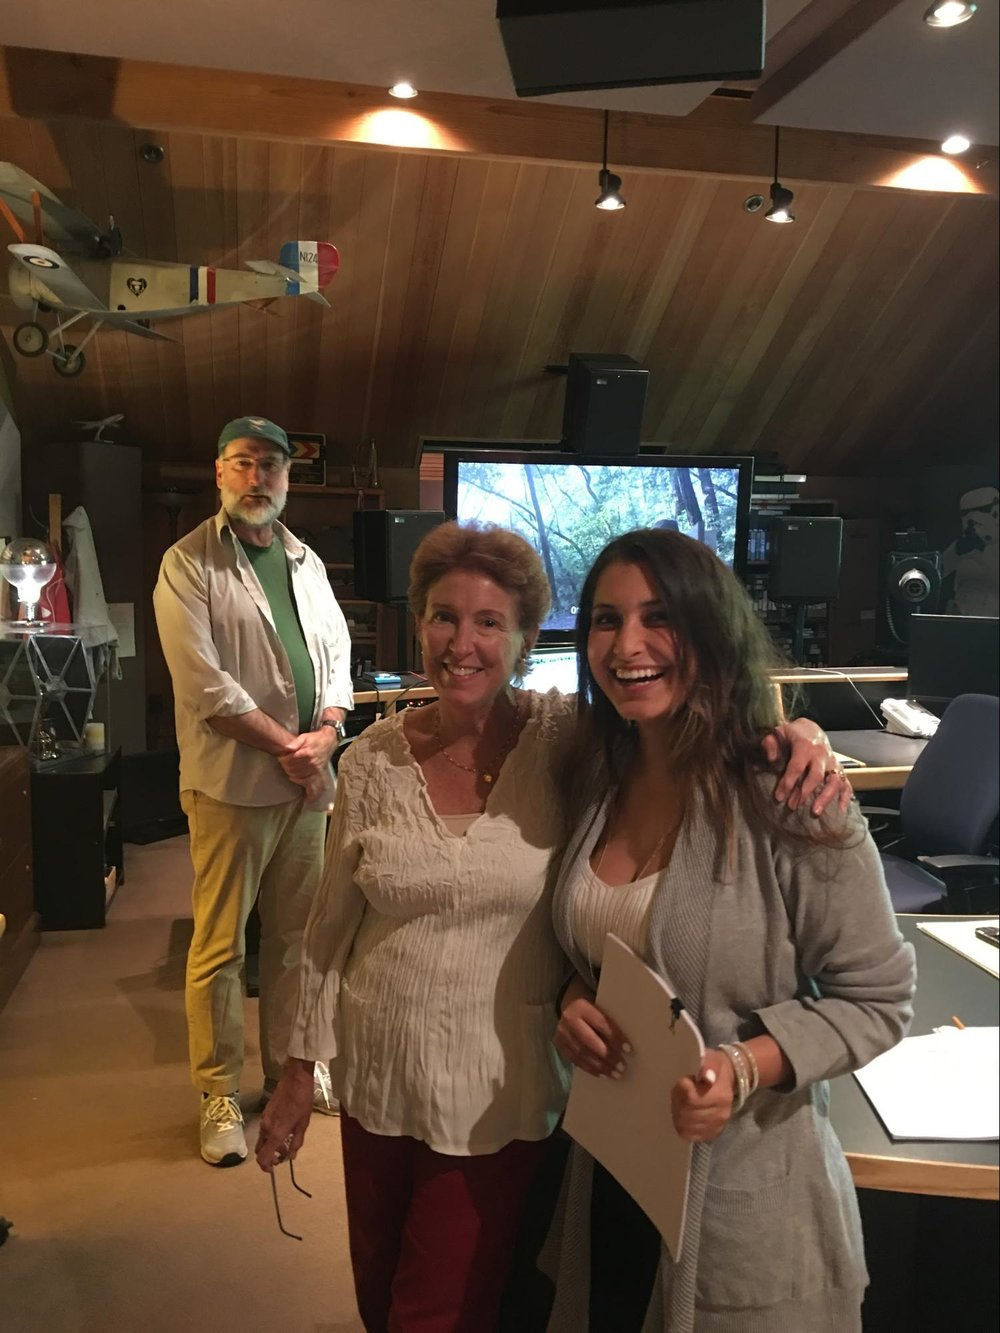 Larry Oatfield, Laurel Ladevich, Jacqueline Monetta at Skywalker Sound